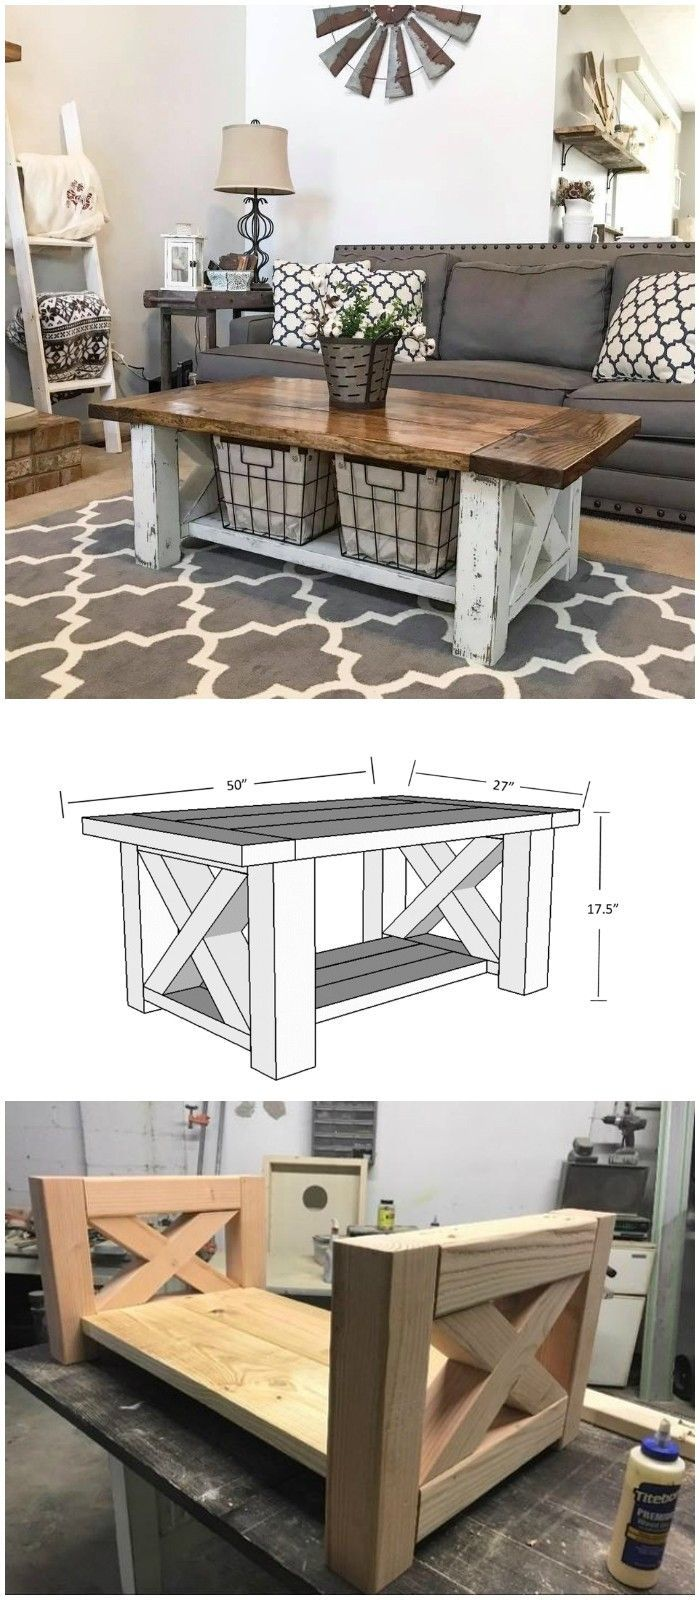 DIY farmhouse coffee table ideas from cute cubes to industrial wooden bobbins. se